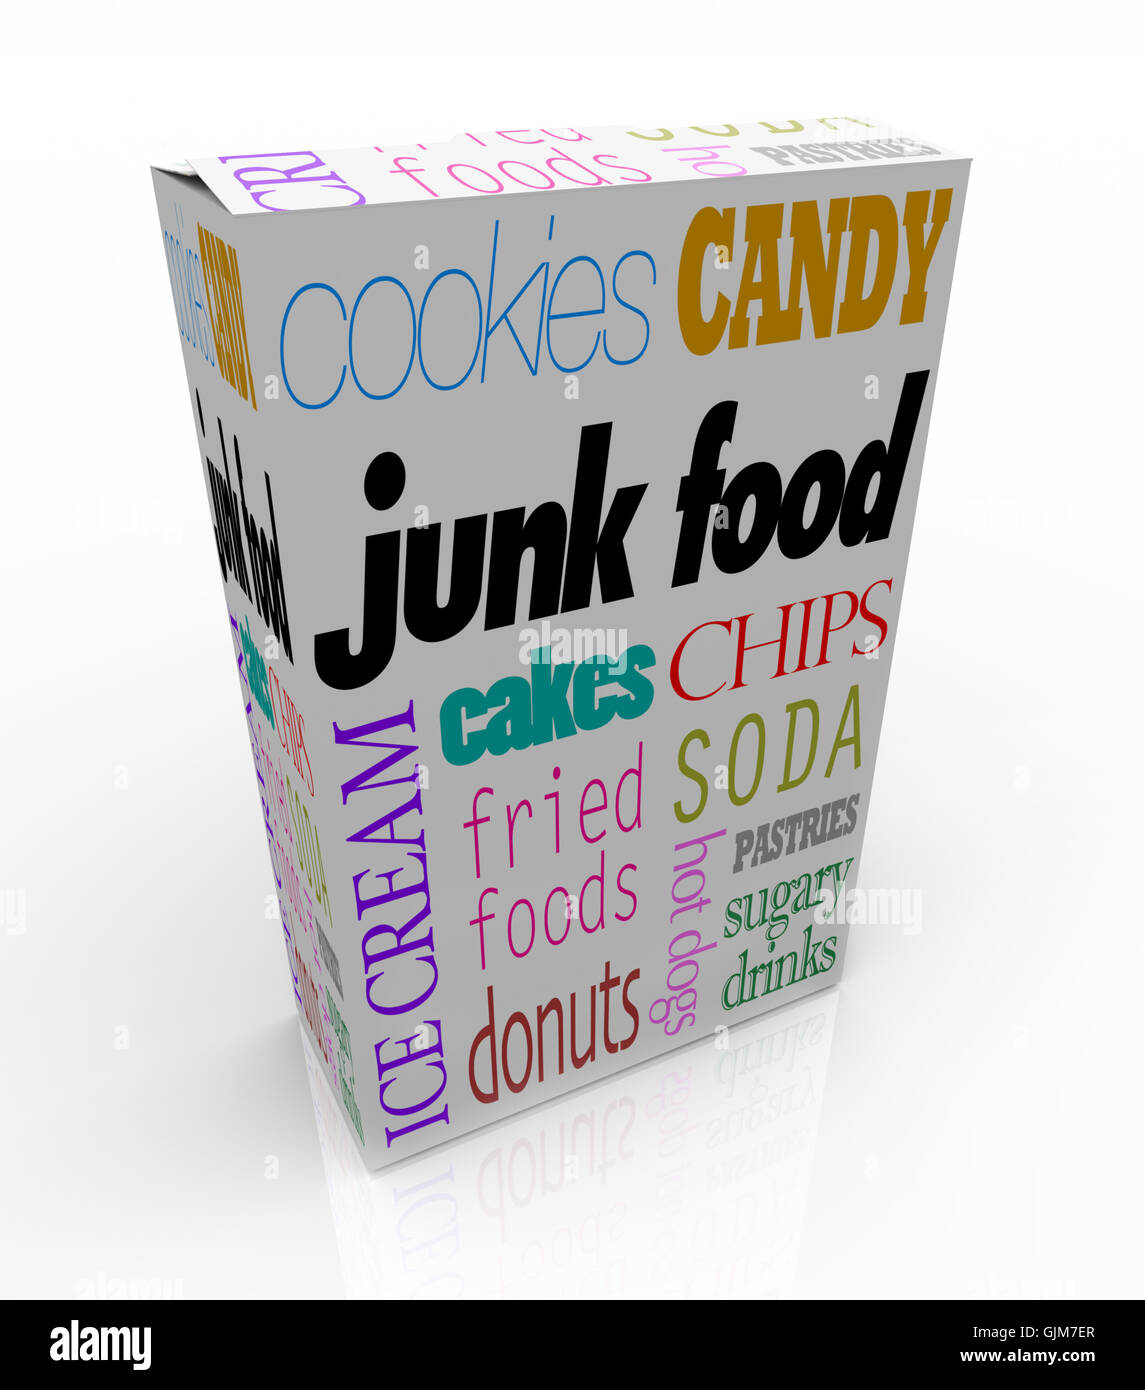 Junk Food Box - Bad Nutritional Choices for Your Diet - Stock Image